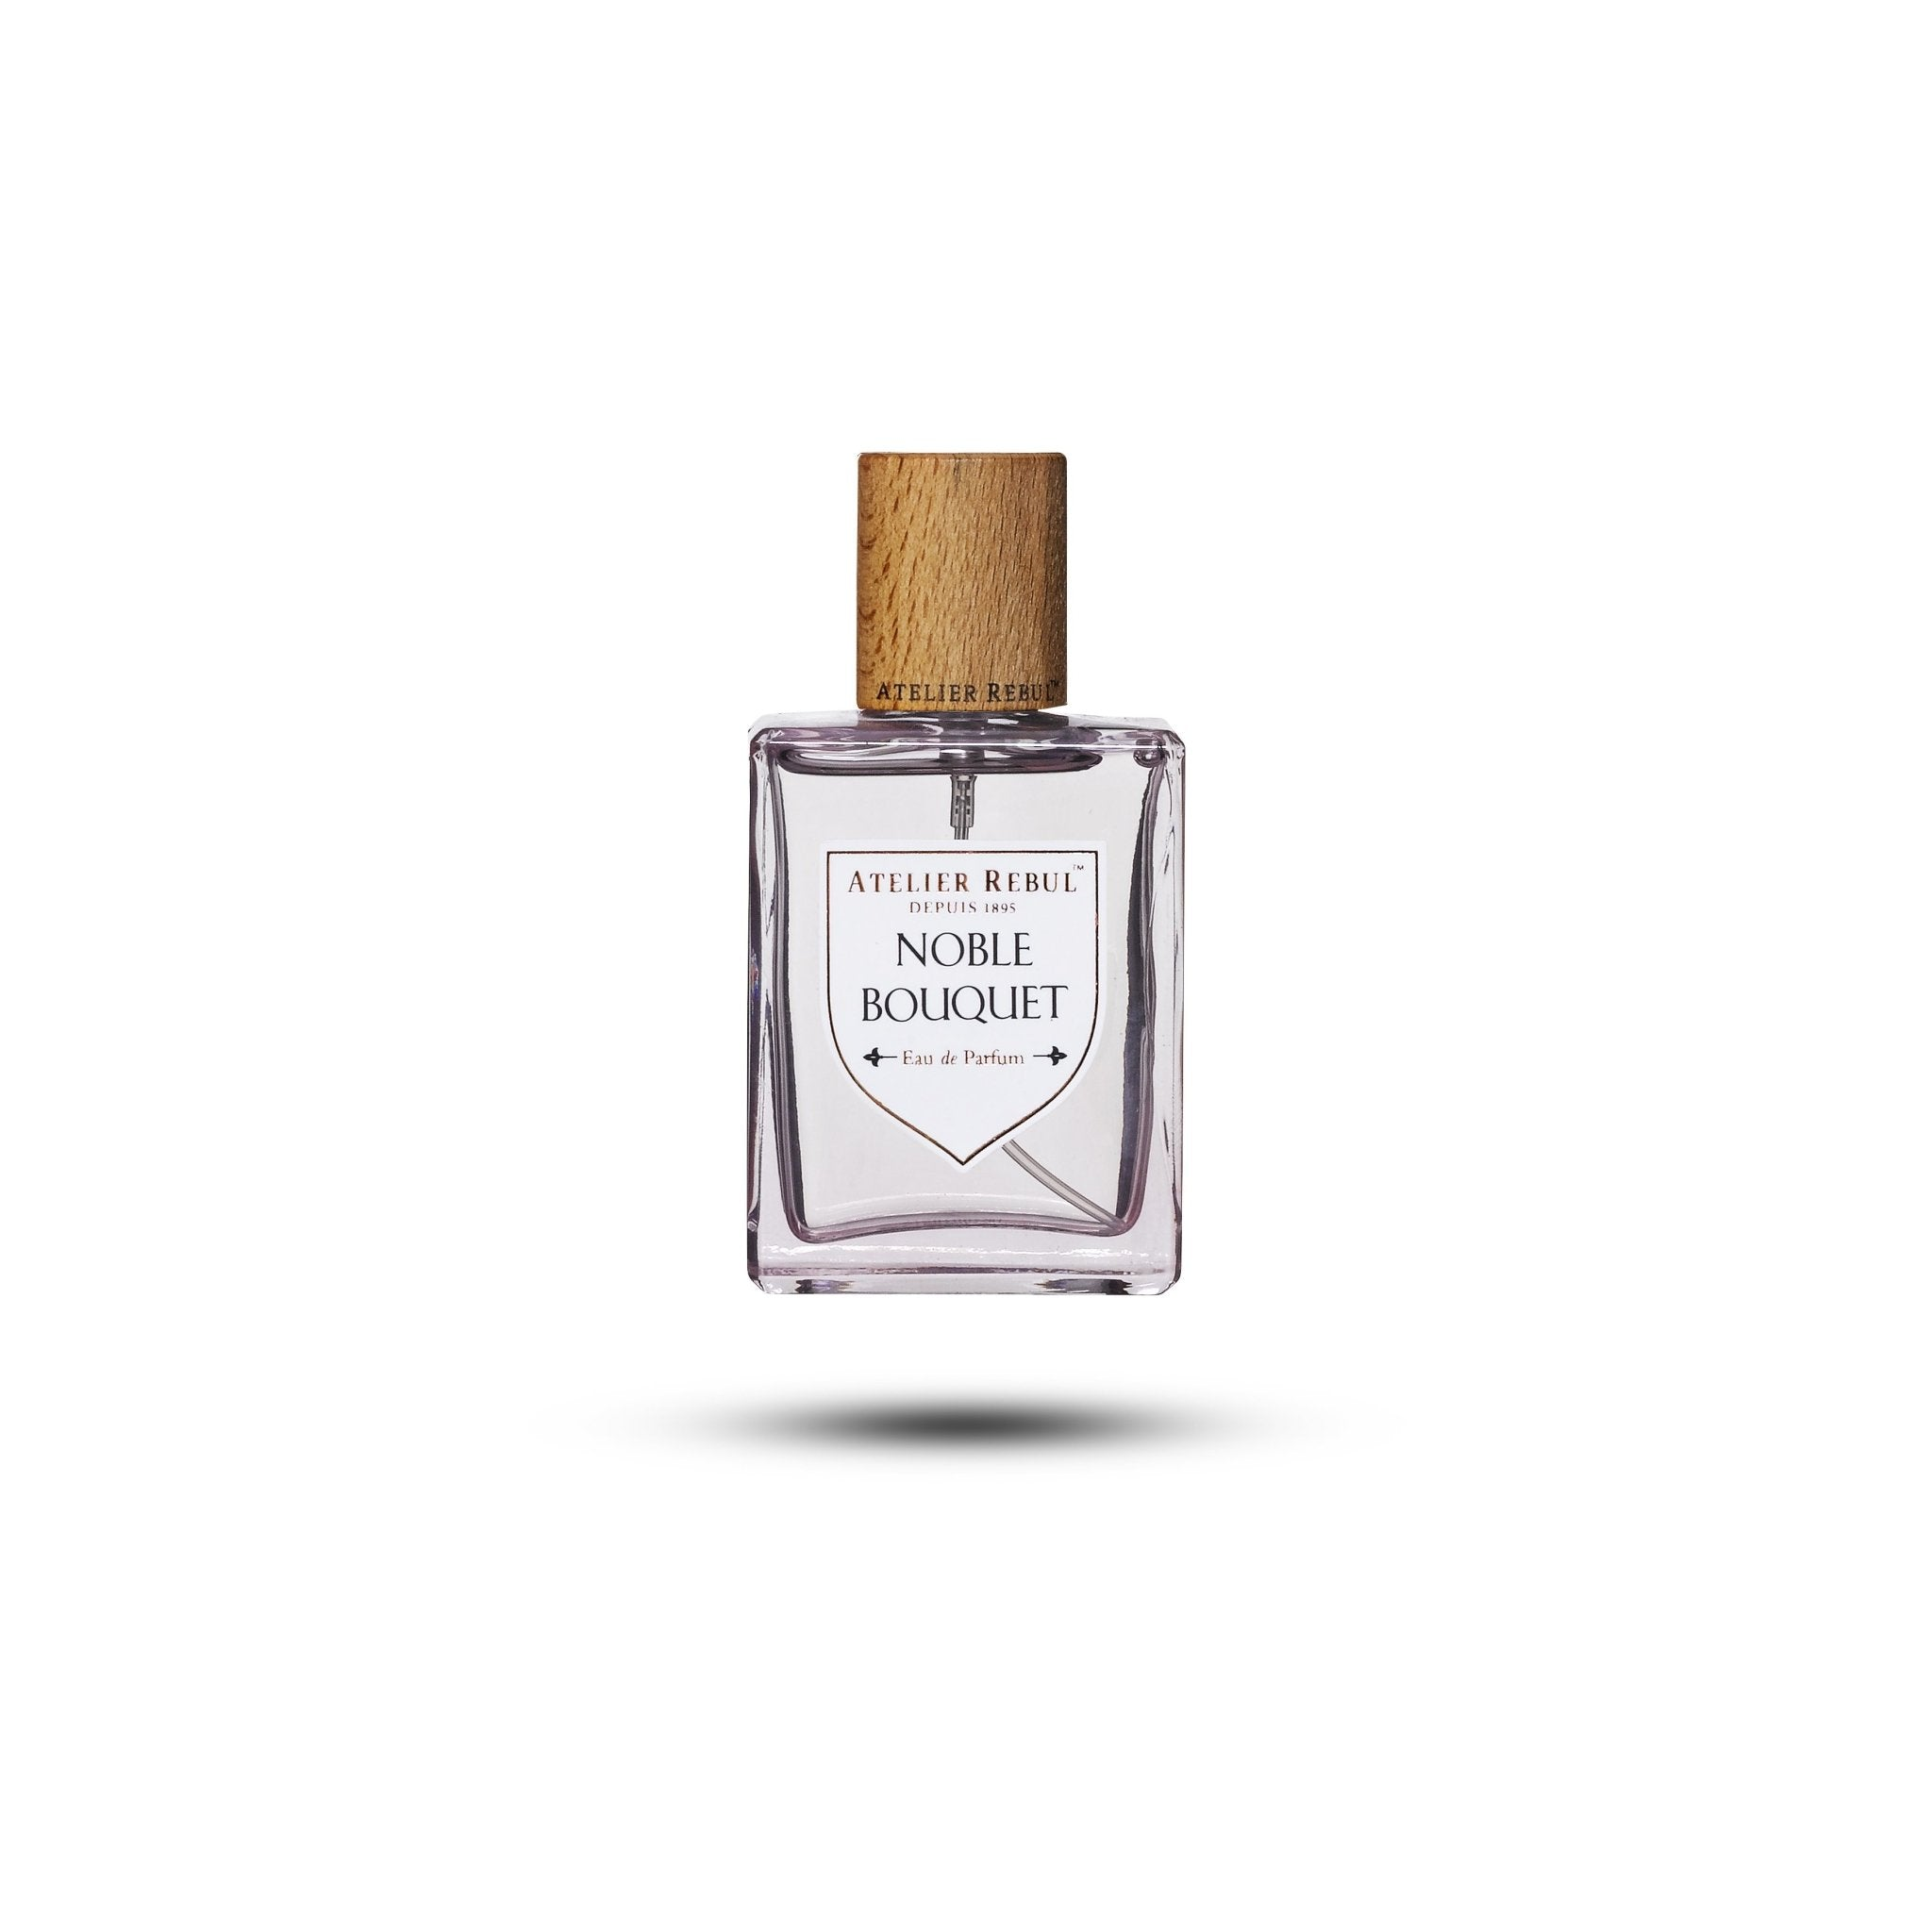 Noble Bouquet 50ml Eau de Parfum for Women - Atelier Rebul